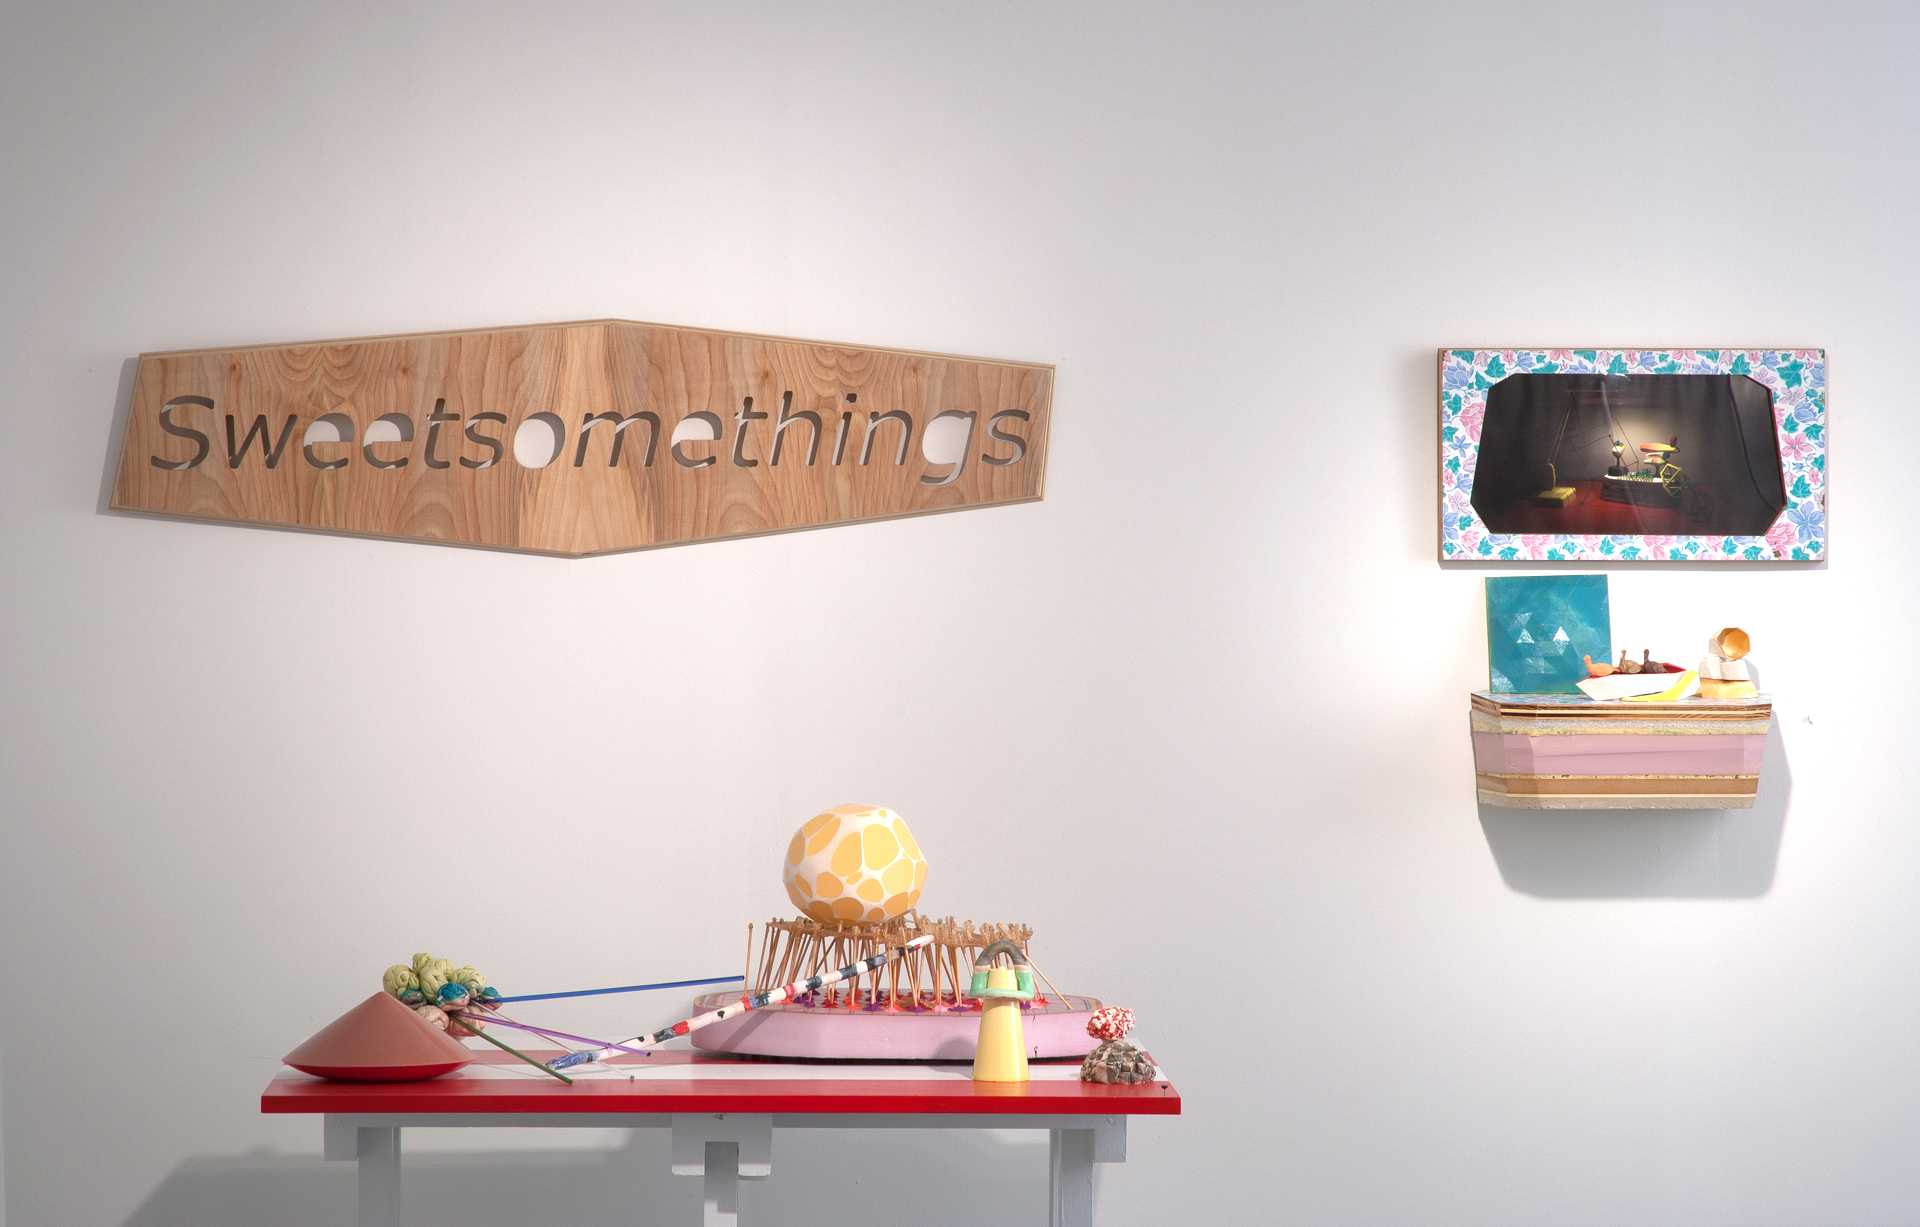 Sweetsomethings   Collaboration with Hank Hafkemeyer  Overall view Plywood, Ceramic, glass, oil clay, rock sugar, insulation foam, paint 2012 Photo Credit: E.G. Schempf